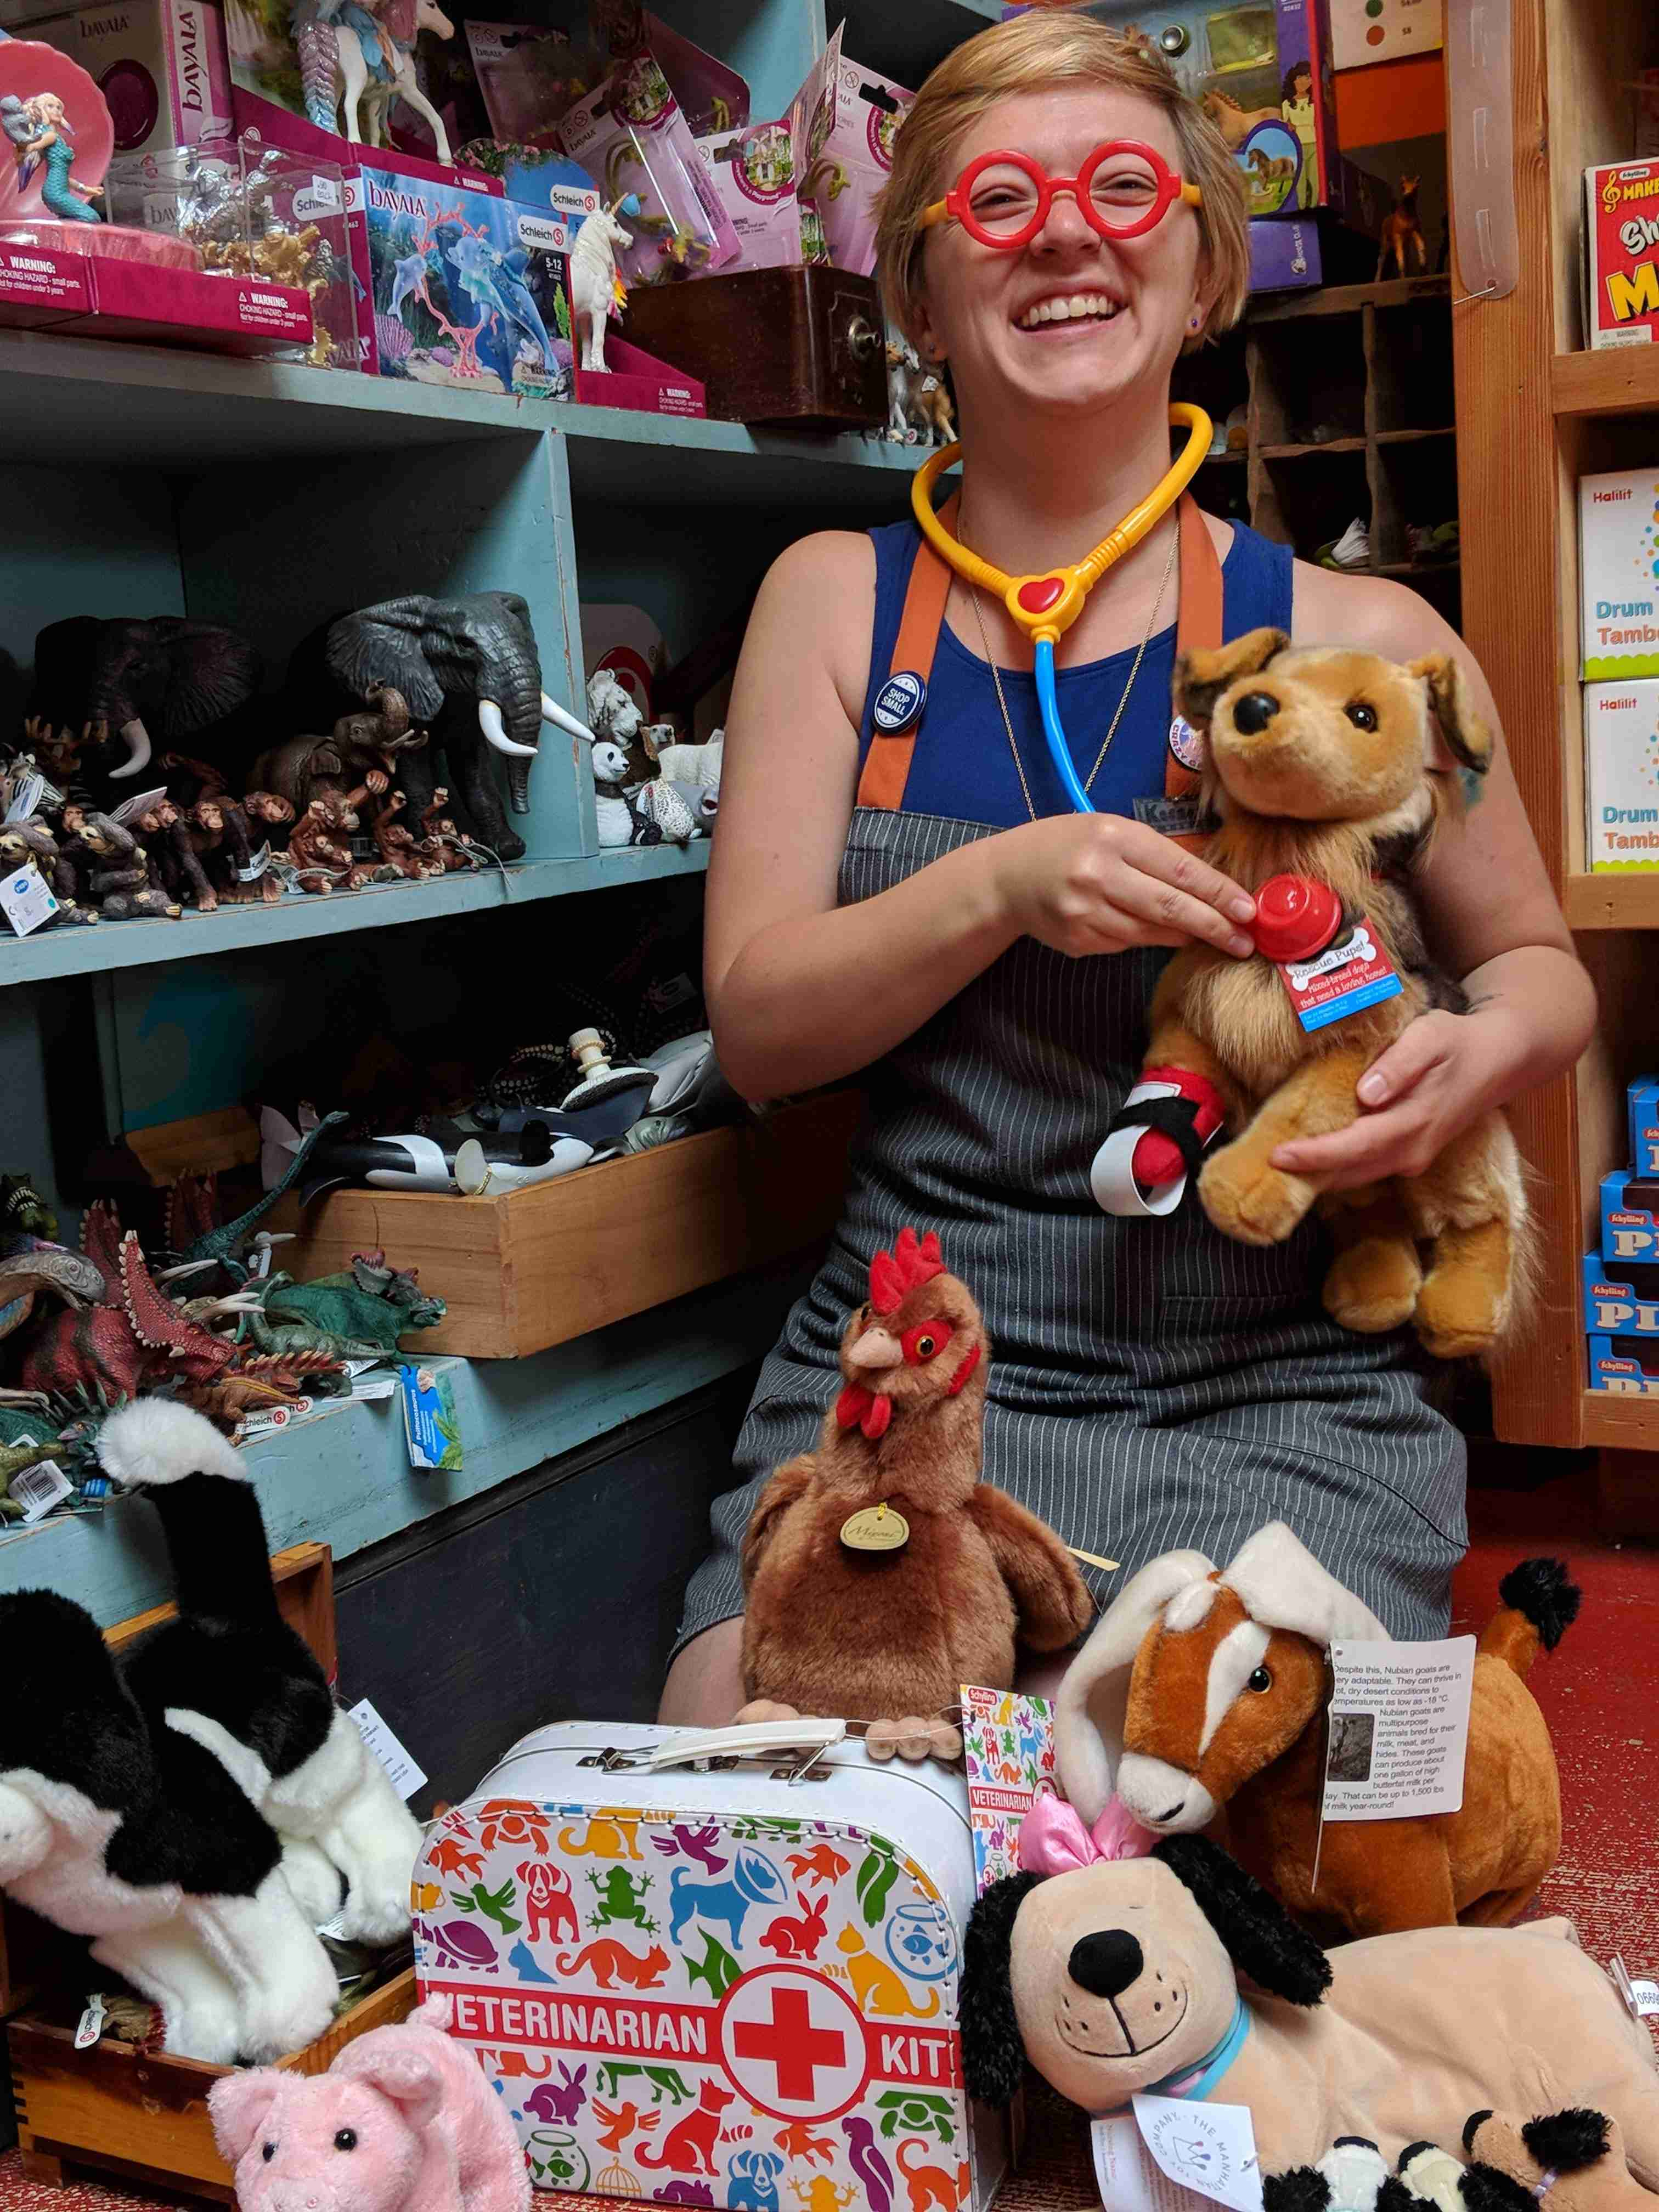 A Look at Getting Creative to Sell Imaginative-Play Toys - Souvenirs